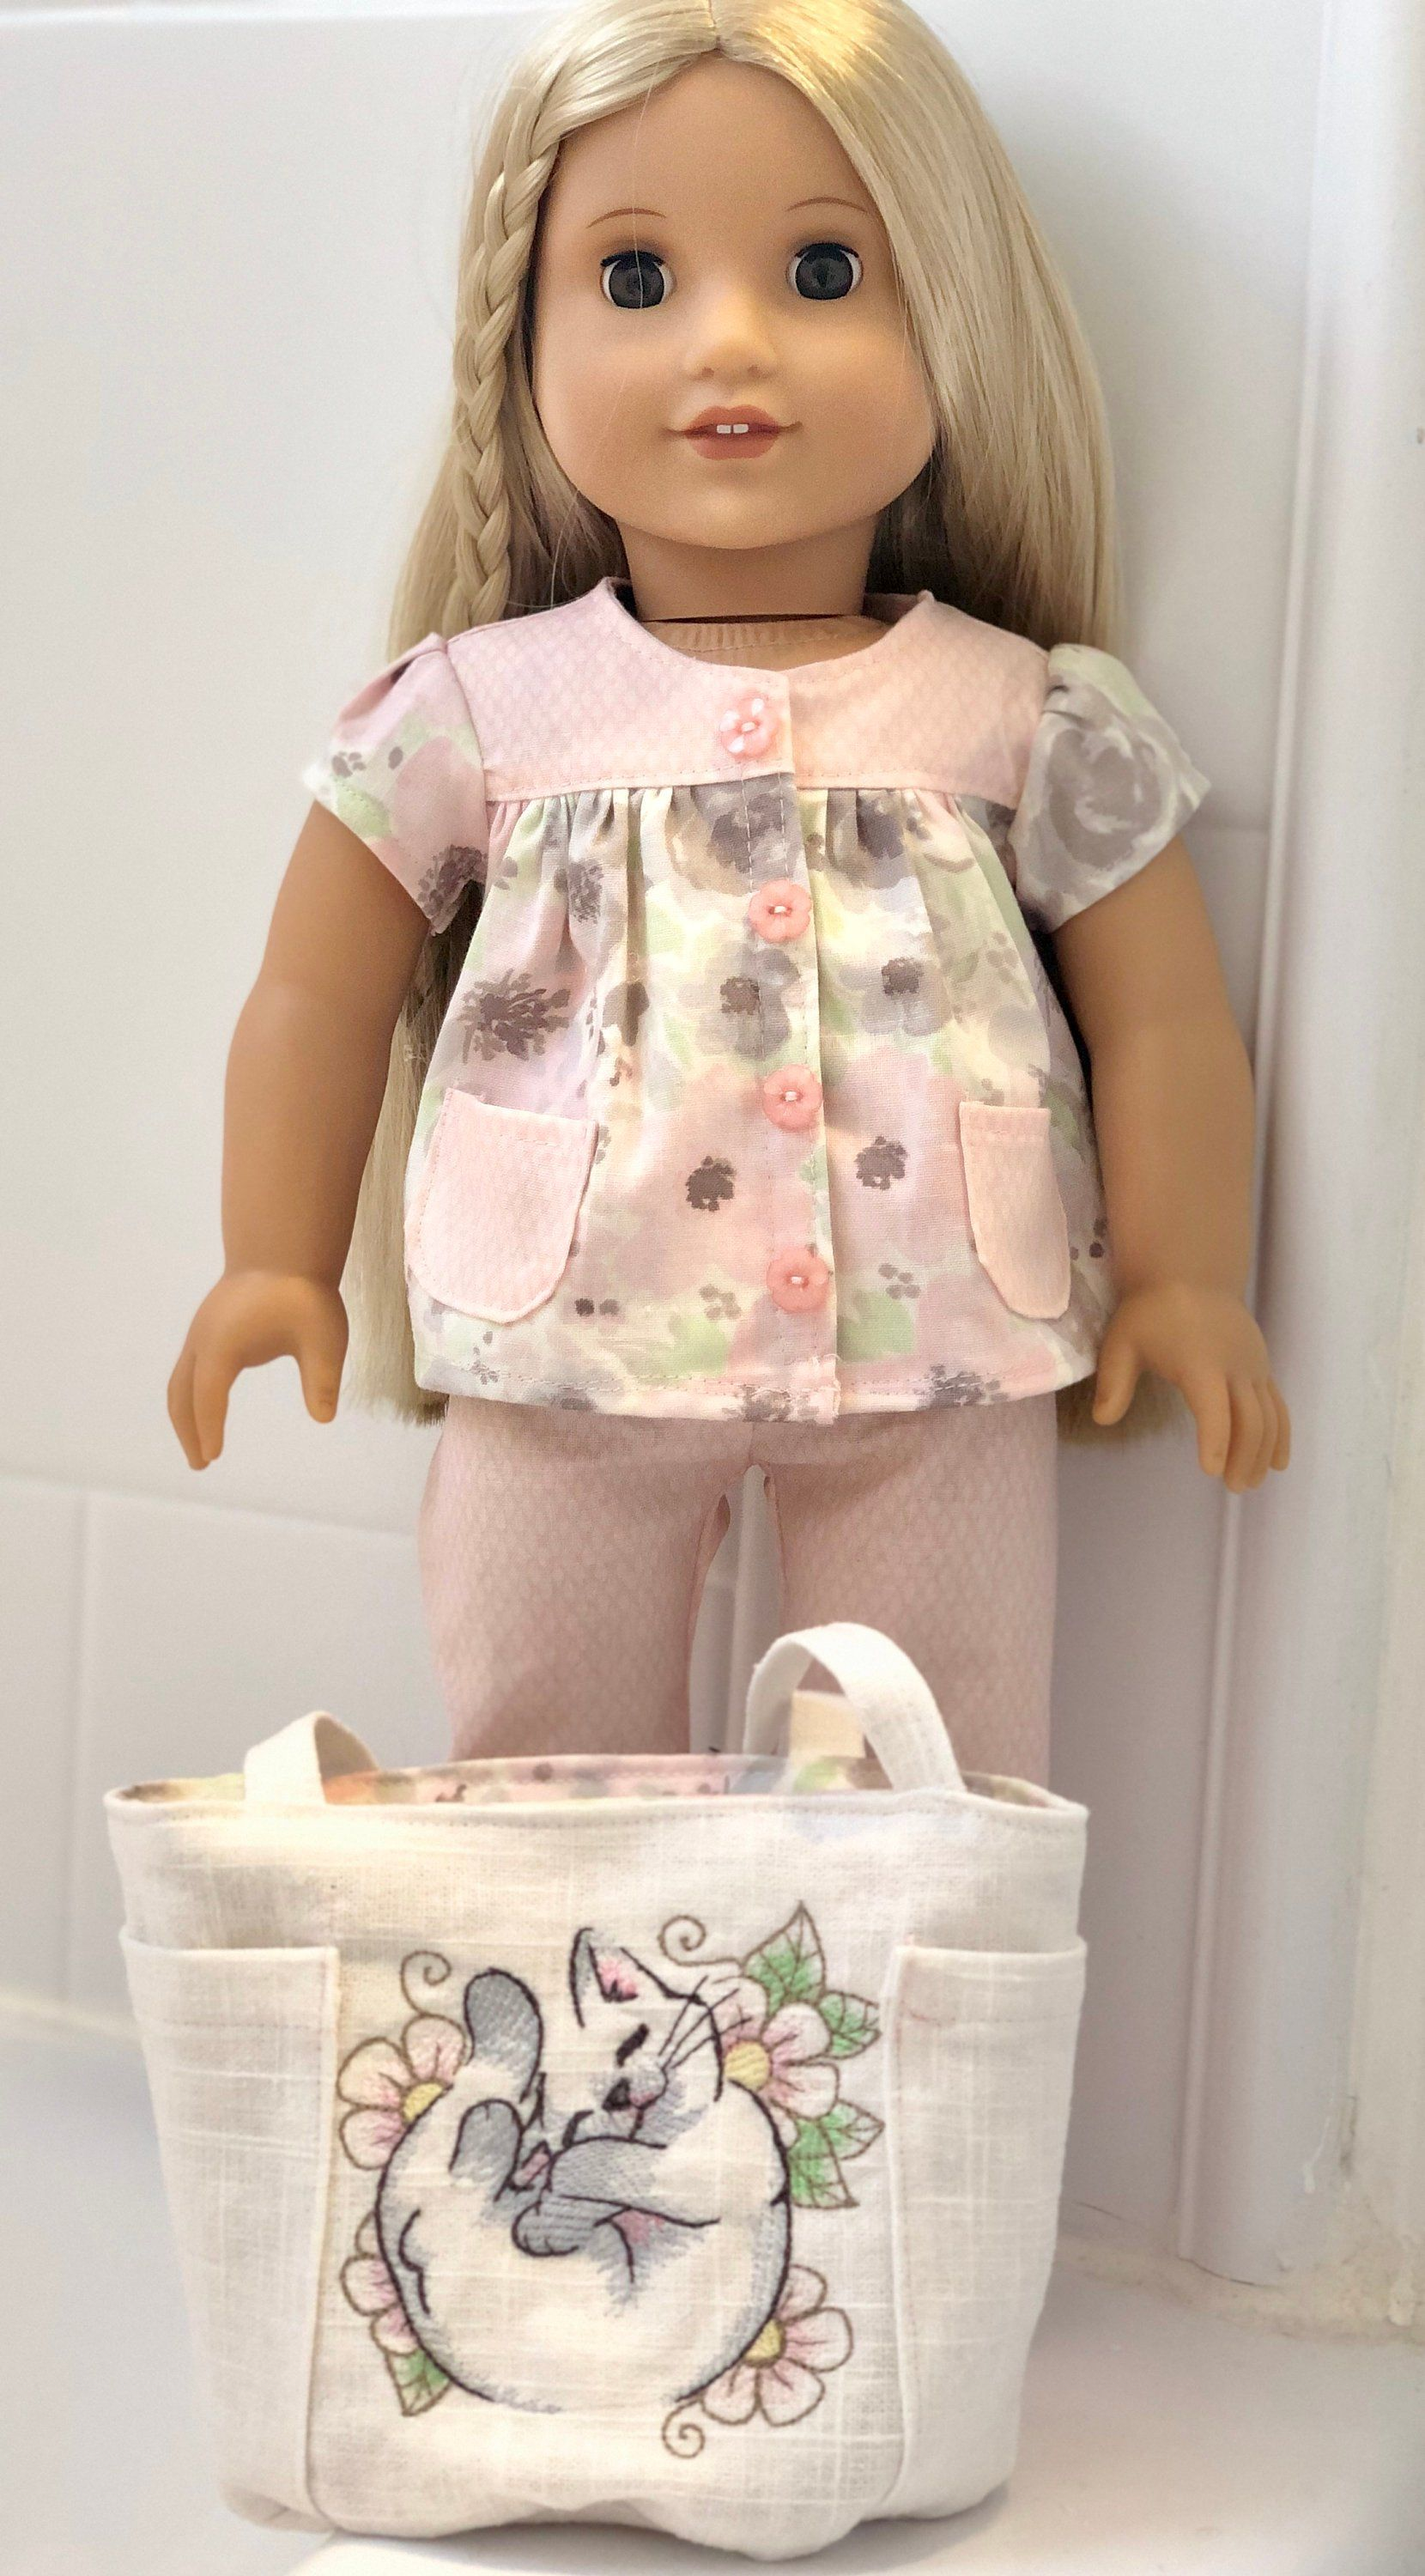 18 Girl Doll Clothes, Spring and Summer Pajamas and Embroidered Overnight Tote Bag made to fit dolls like American girl dolls #dollclothes